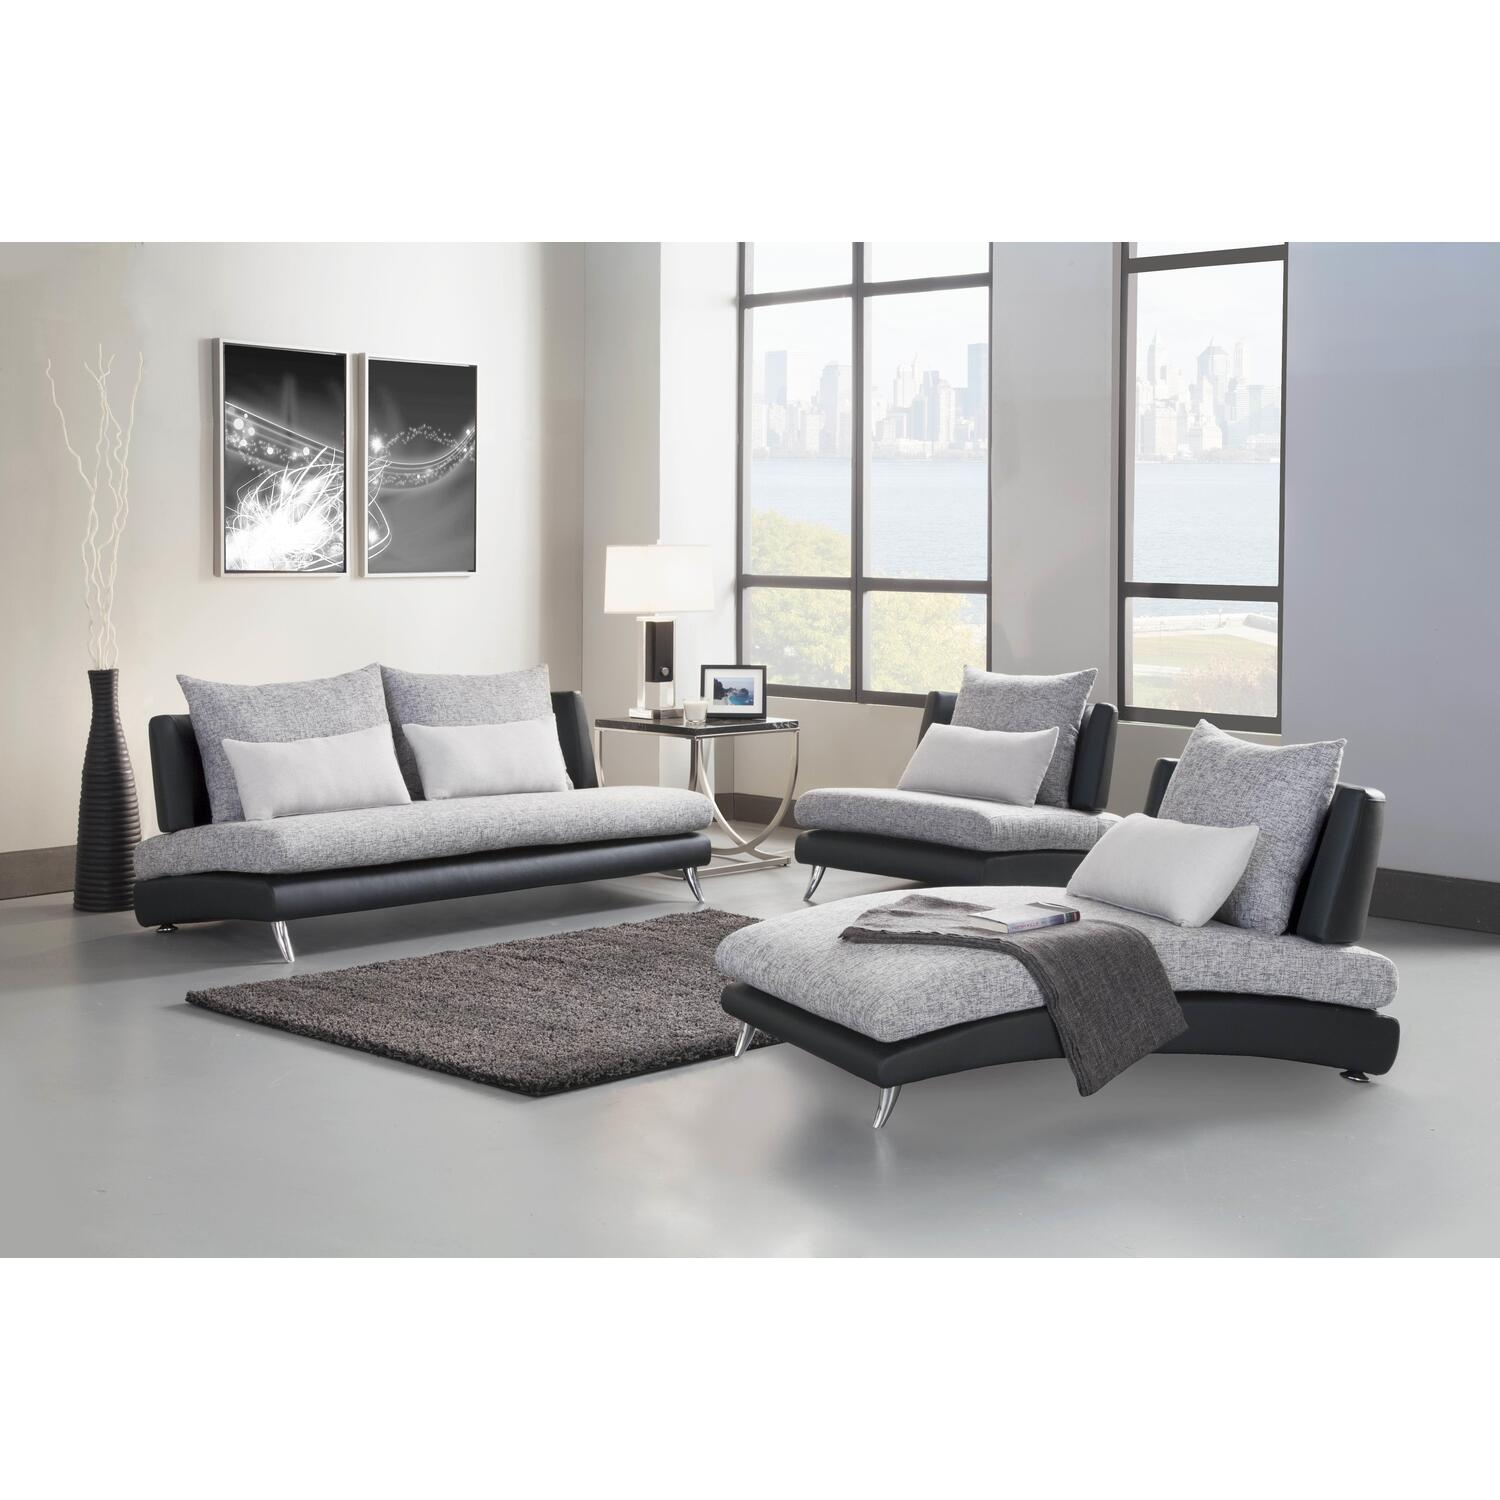 Homelegance Renton Living Room Set By OJ Commerce 144499 190799